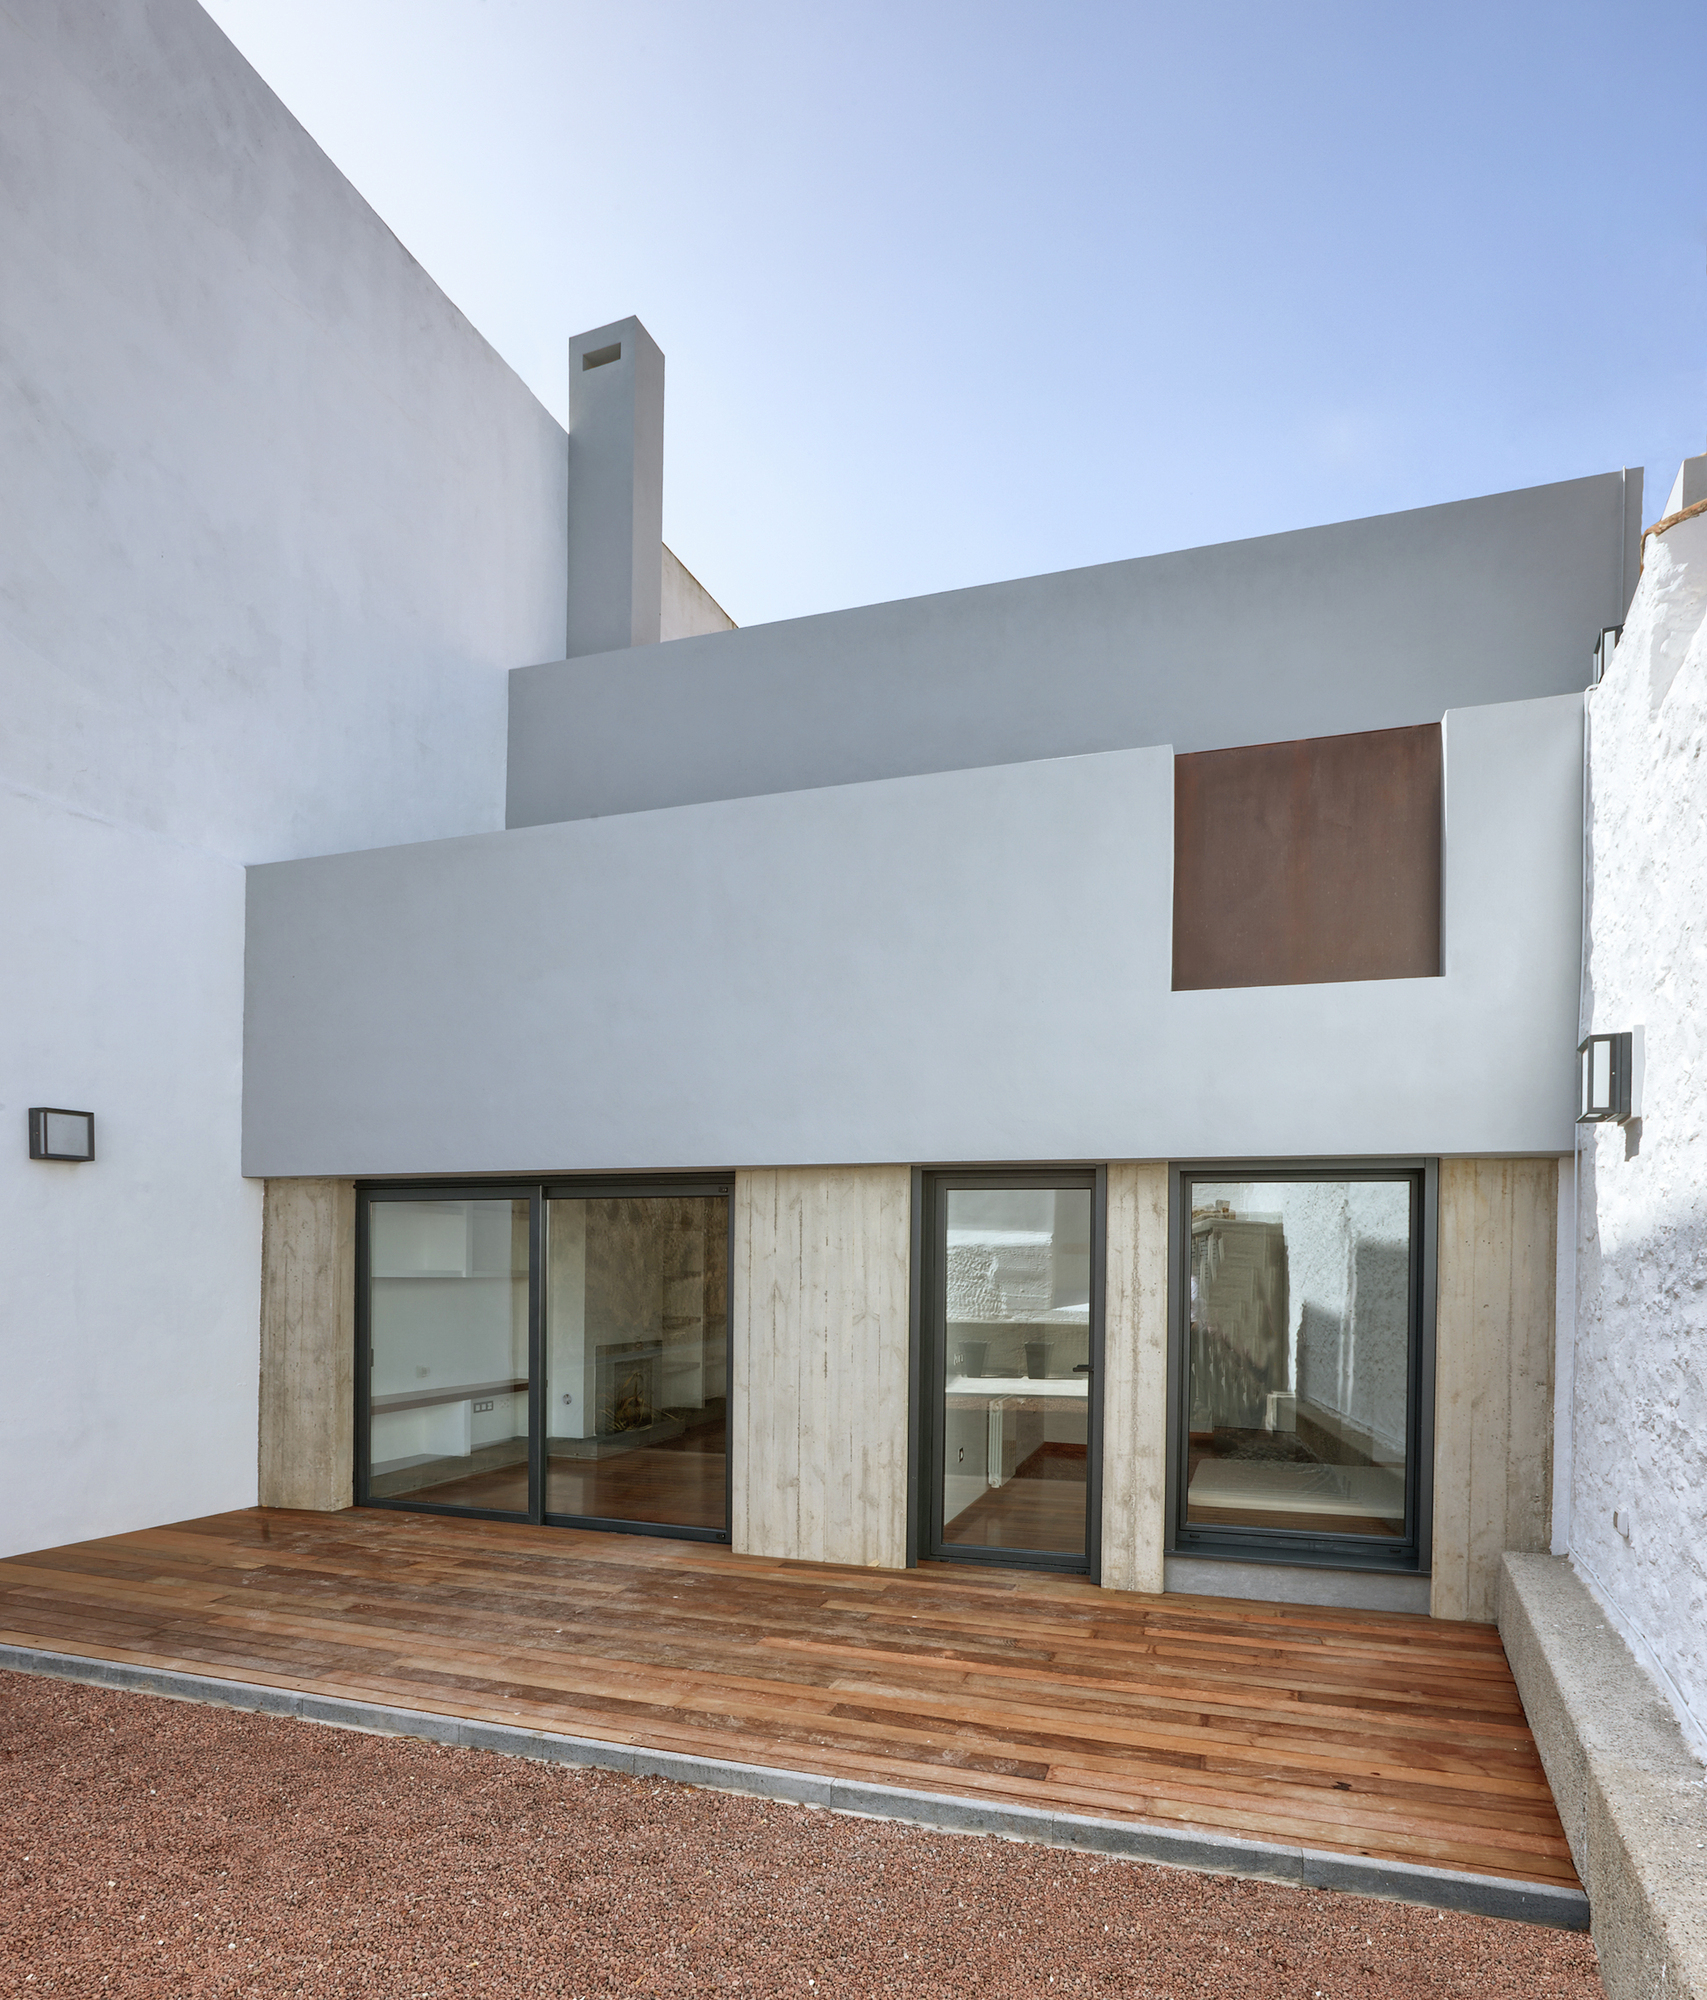 Gallery of housing in canary islands alejandro beautell 25 - Alejandro beautell ...